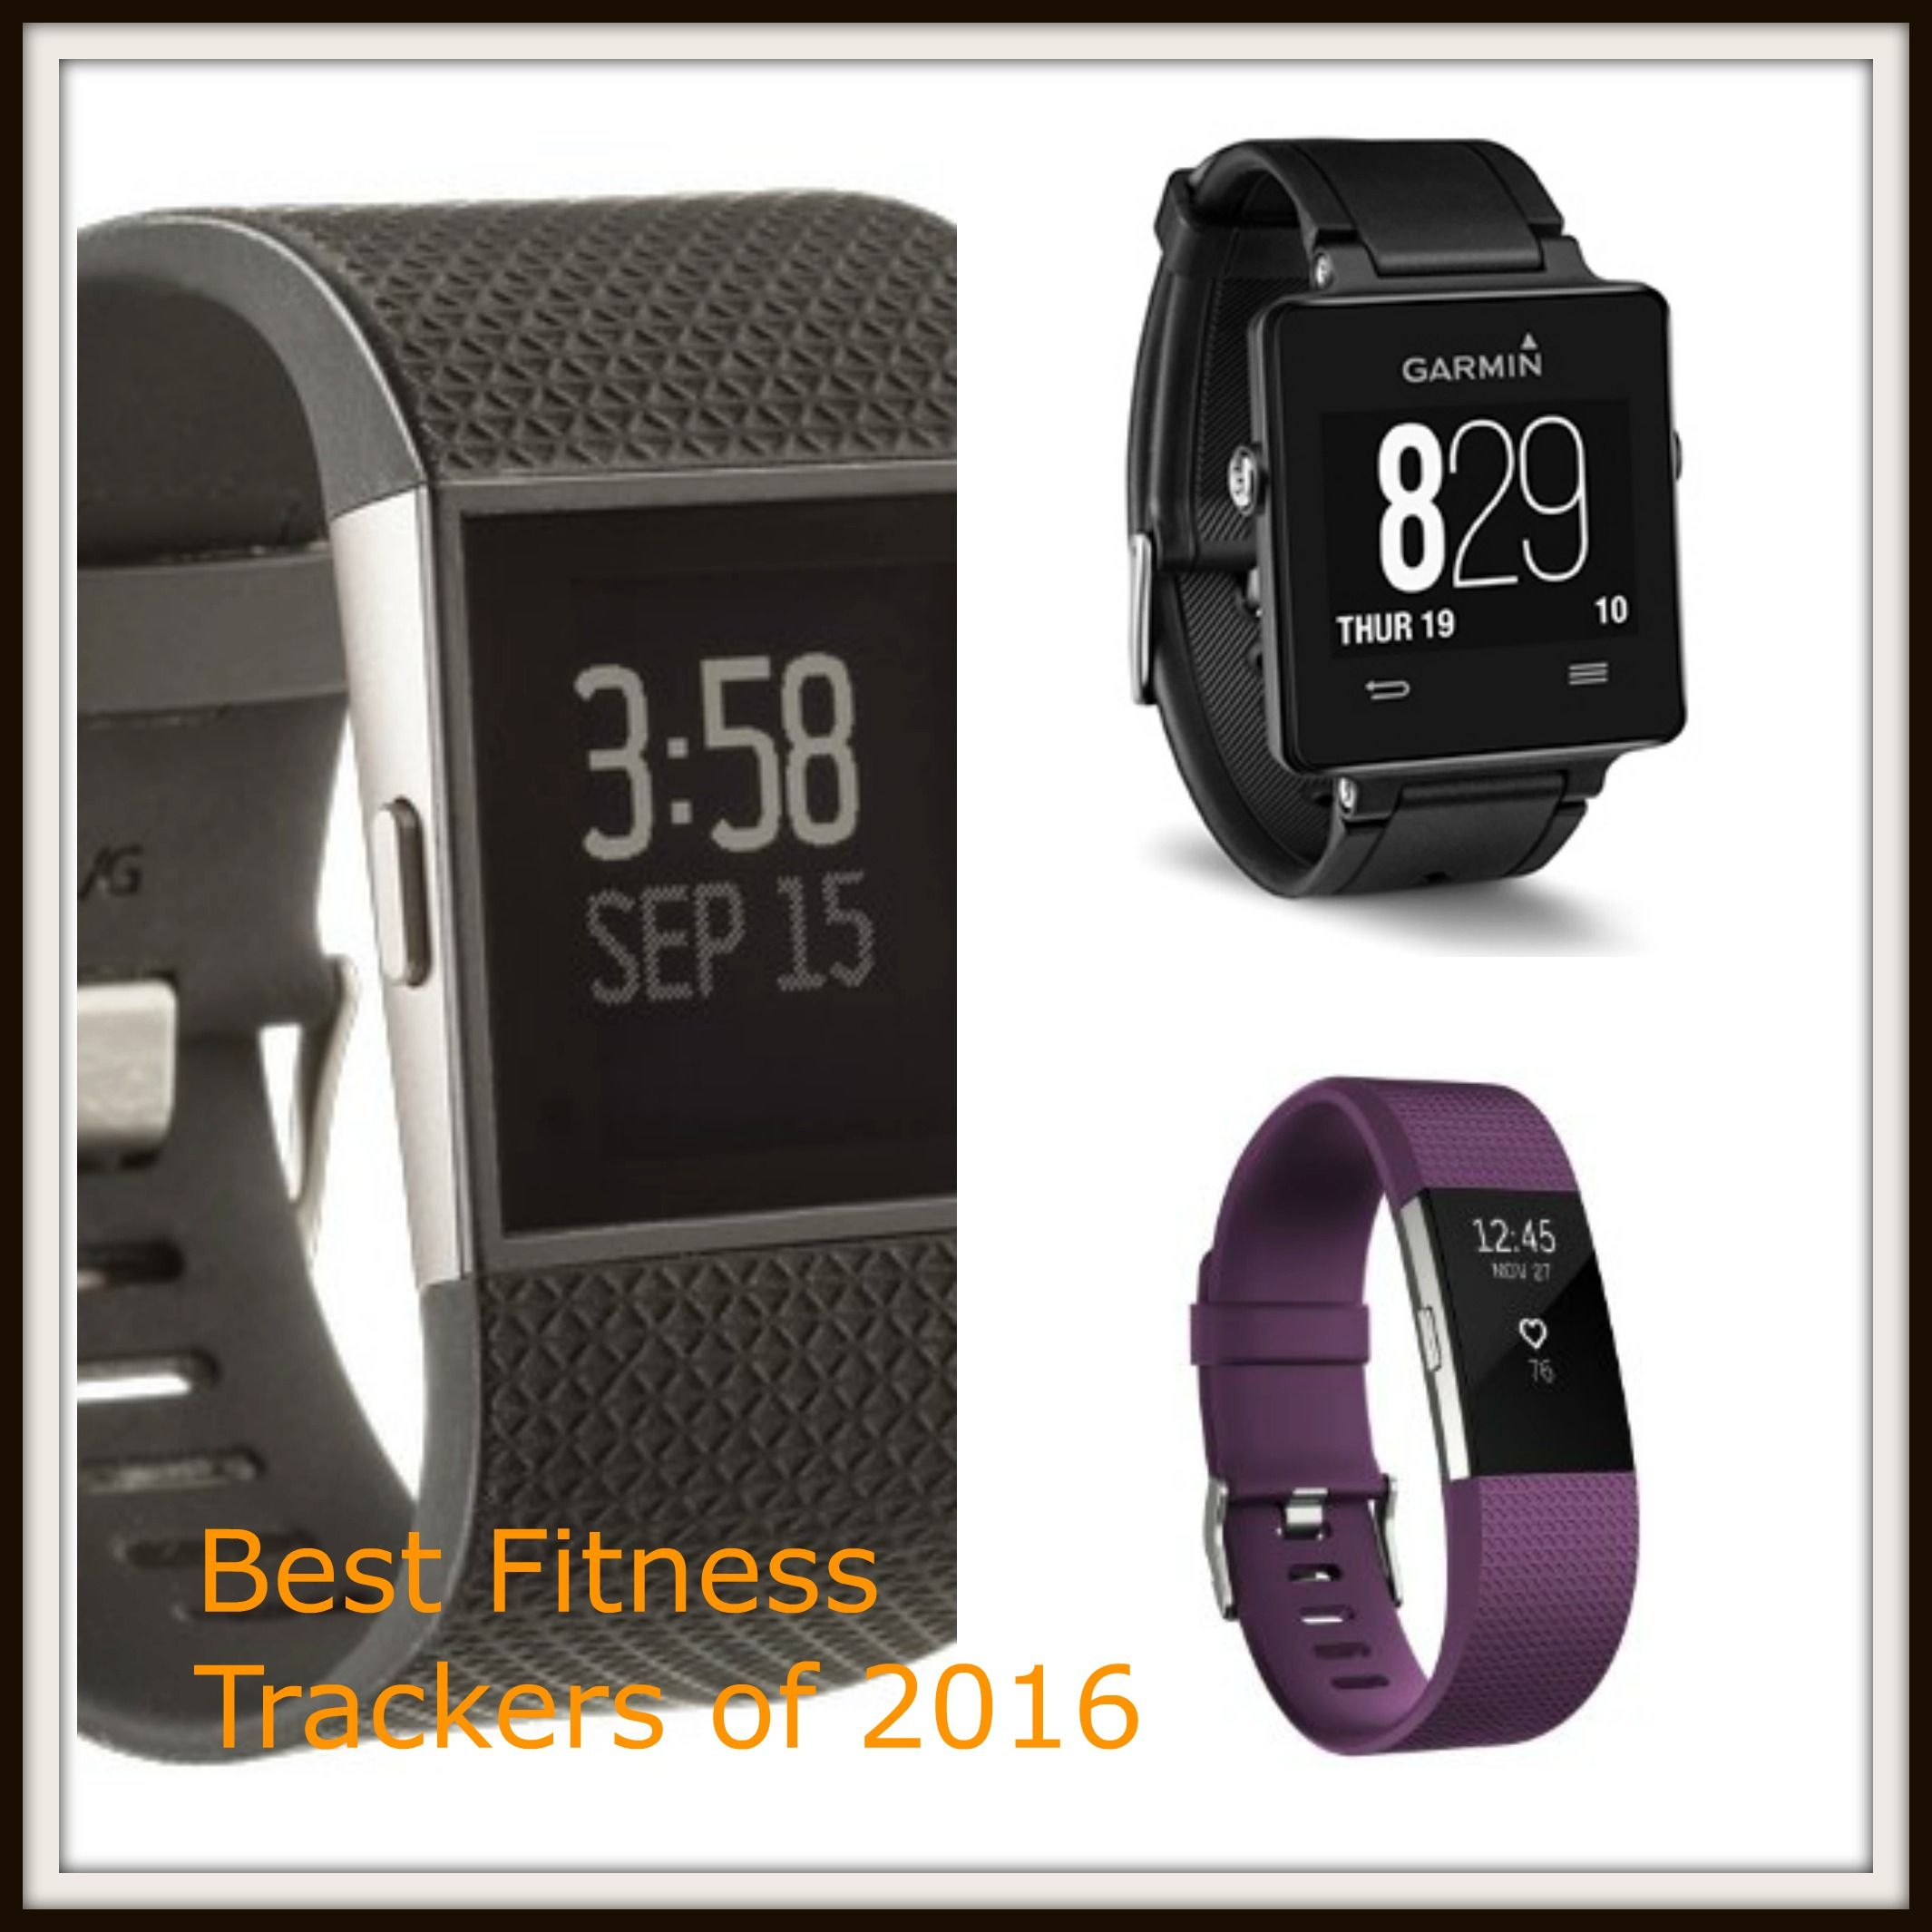 For those of you looking to exercise more, sleep better and improve your overall health in 2017, a fitness tracker may be just what you need. Here are some of the best fitness trackers of 2016.    Fitbit Charge 2- The Fitbit Charge 2 is a wrist band fitness tracker with OLED display. This